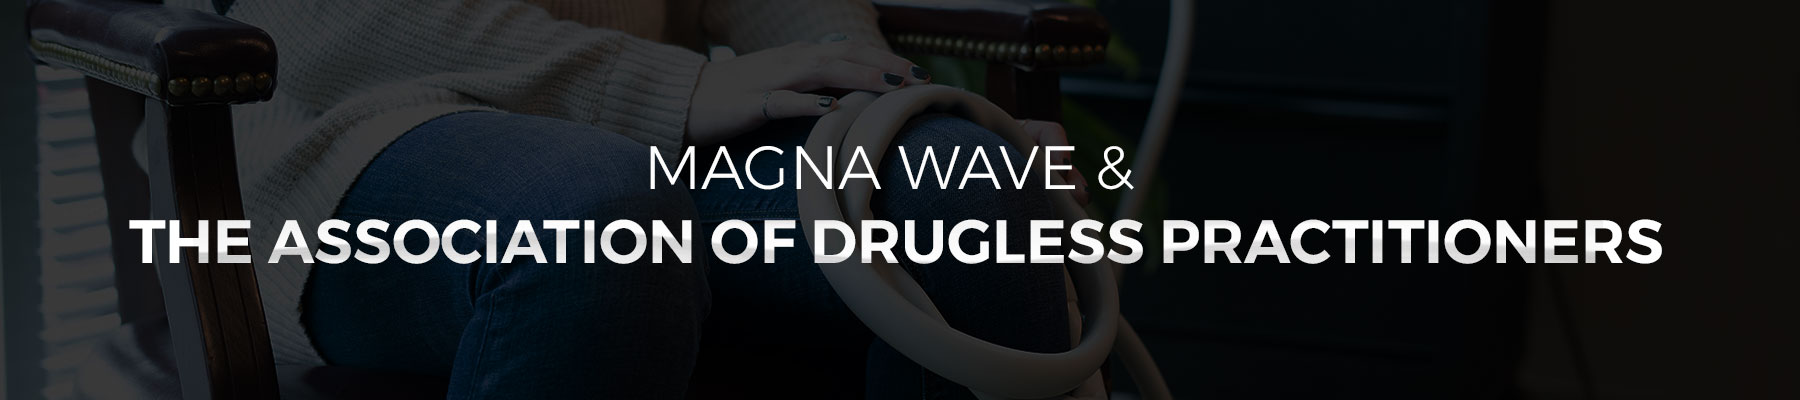 Magna Wave & The Association of Drugless Practitioners